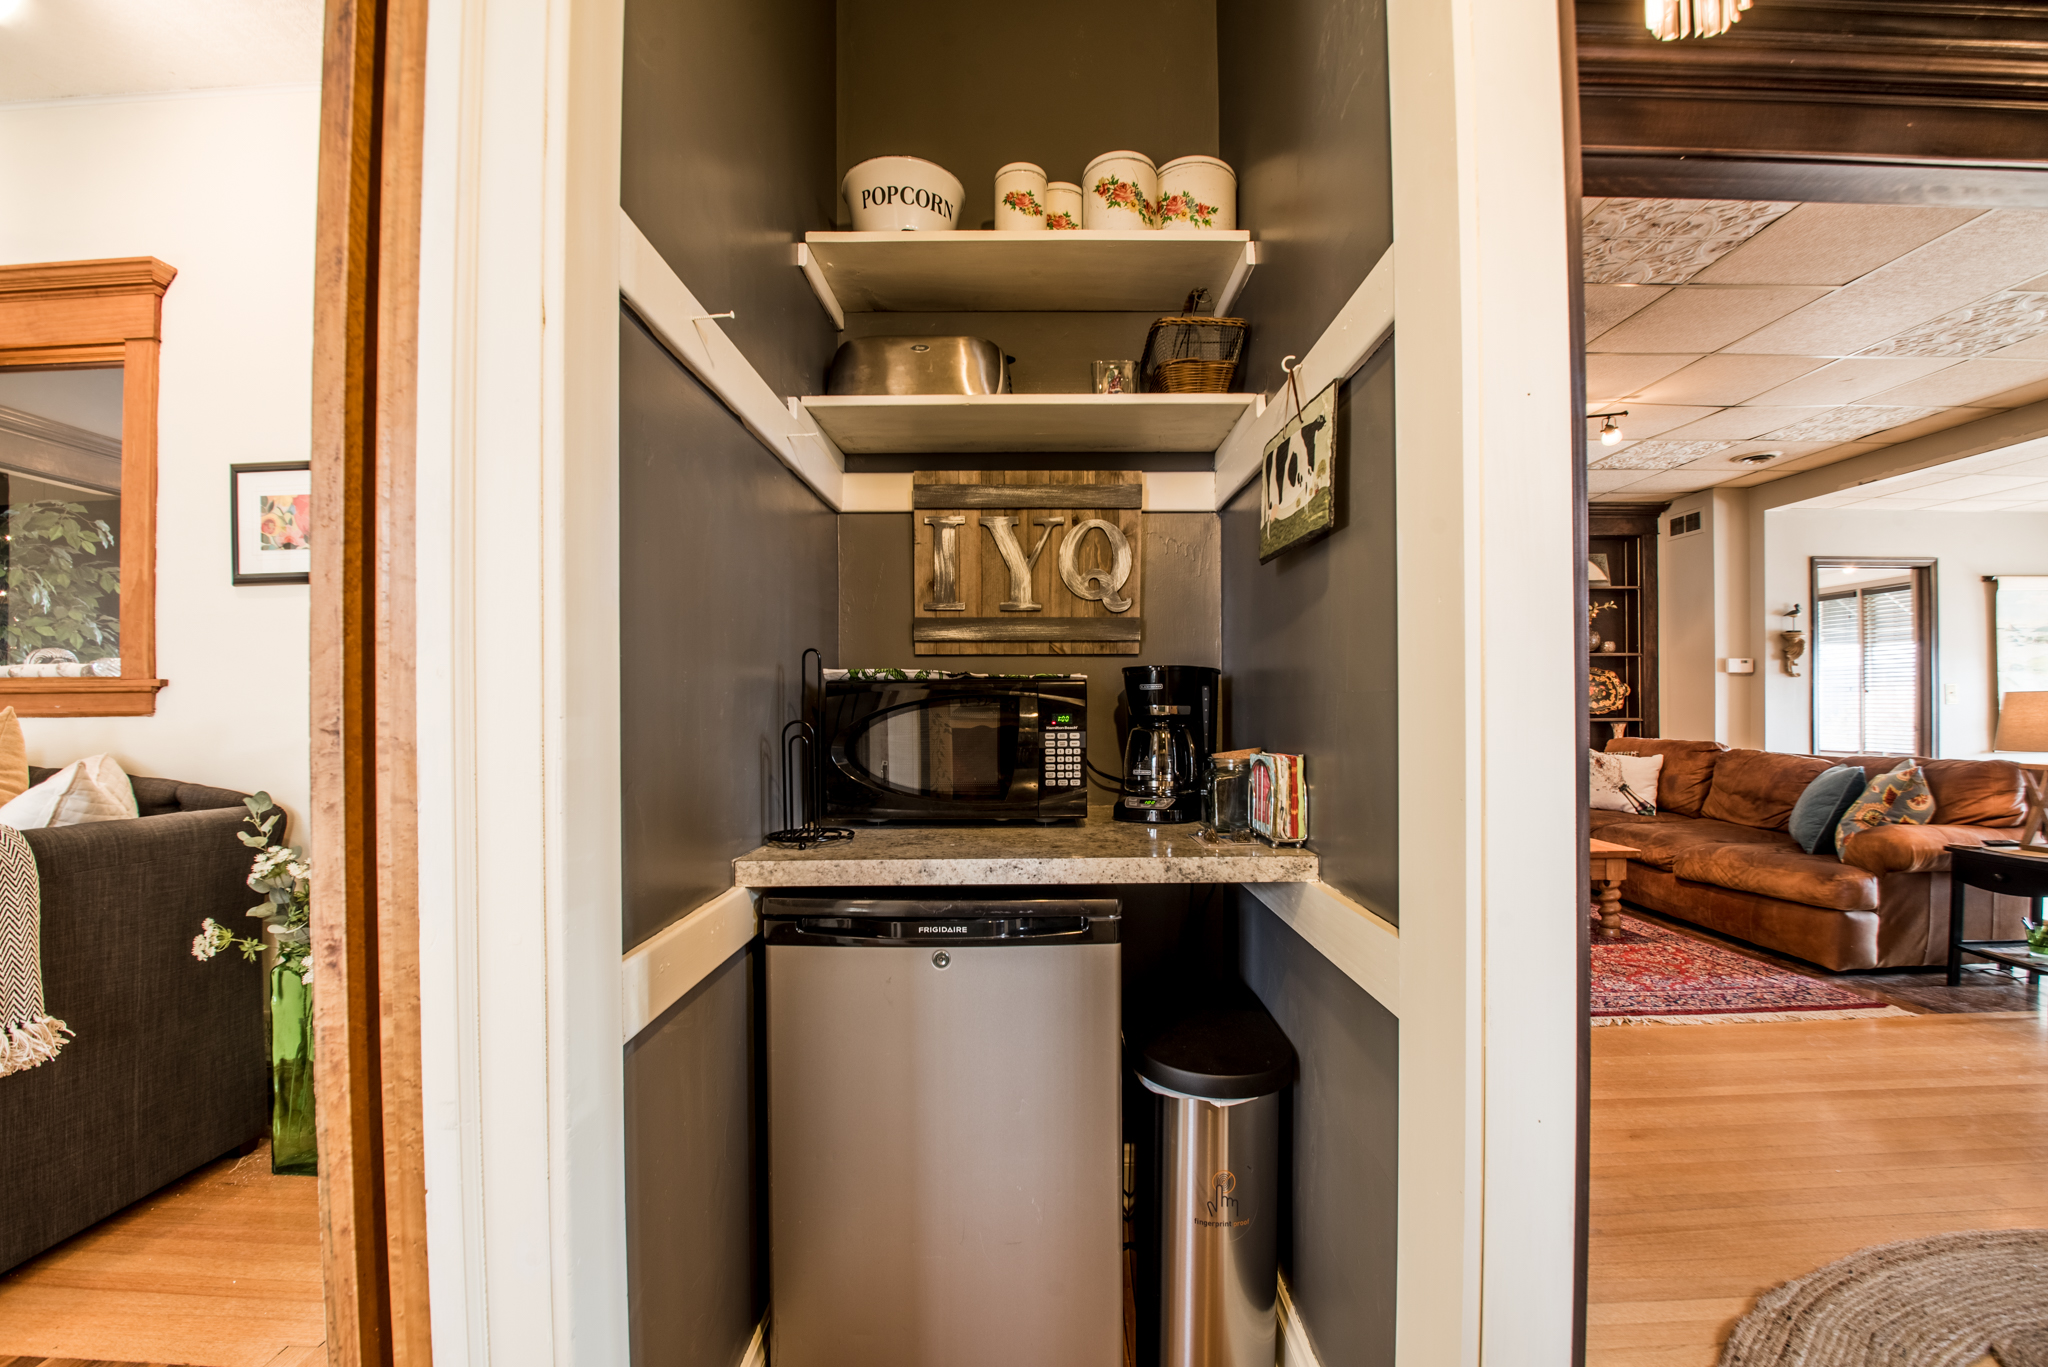 Downstairs kitchenette nook with microwave, toaster, coffee maker, mini fridge/freezer